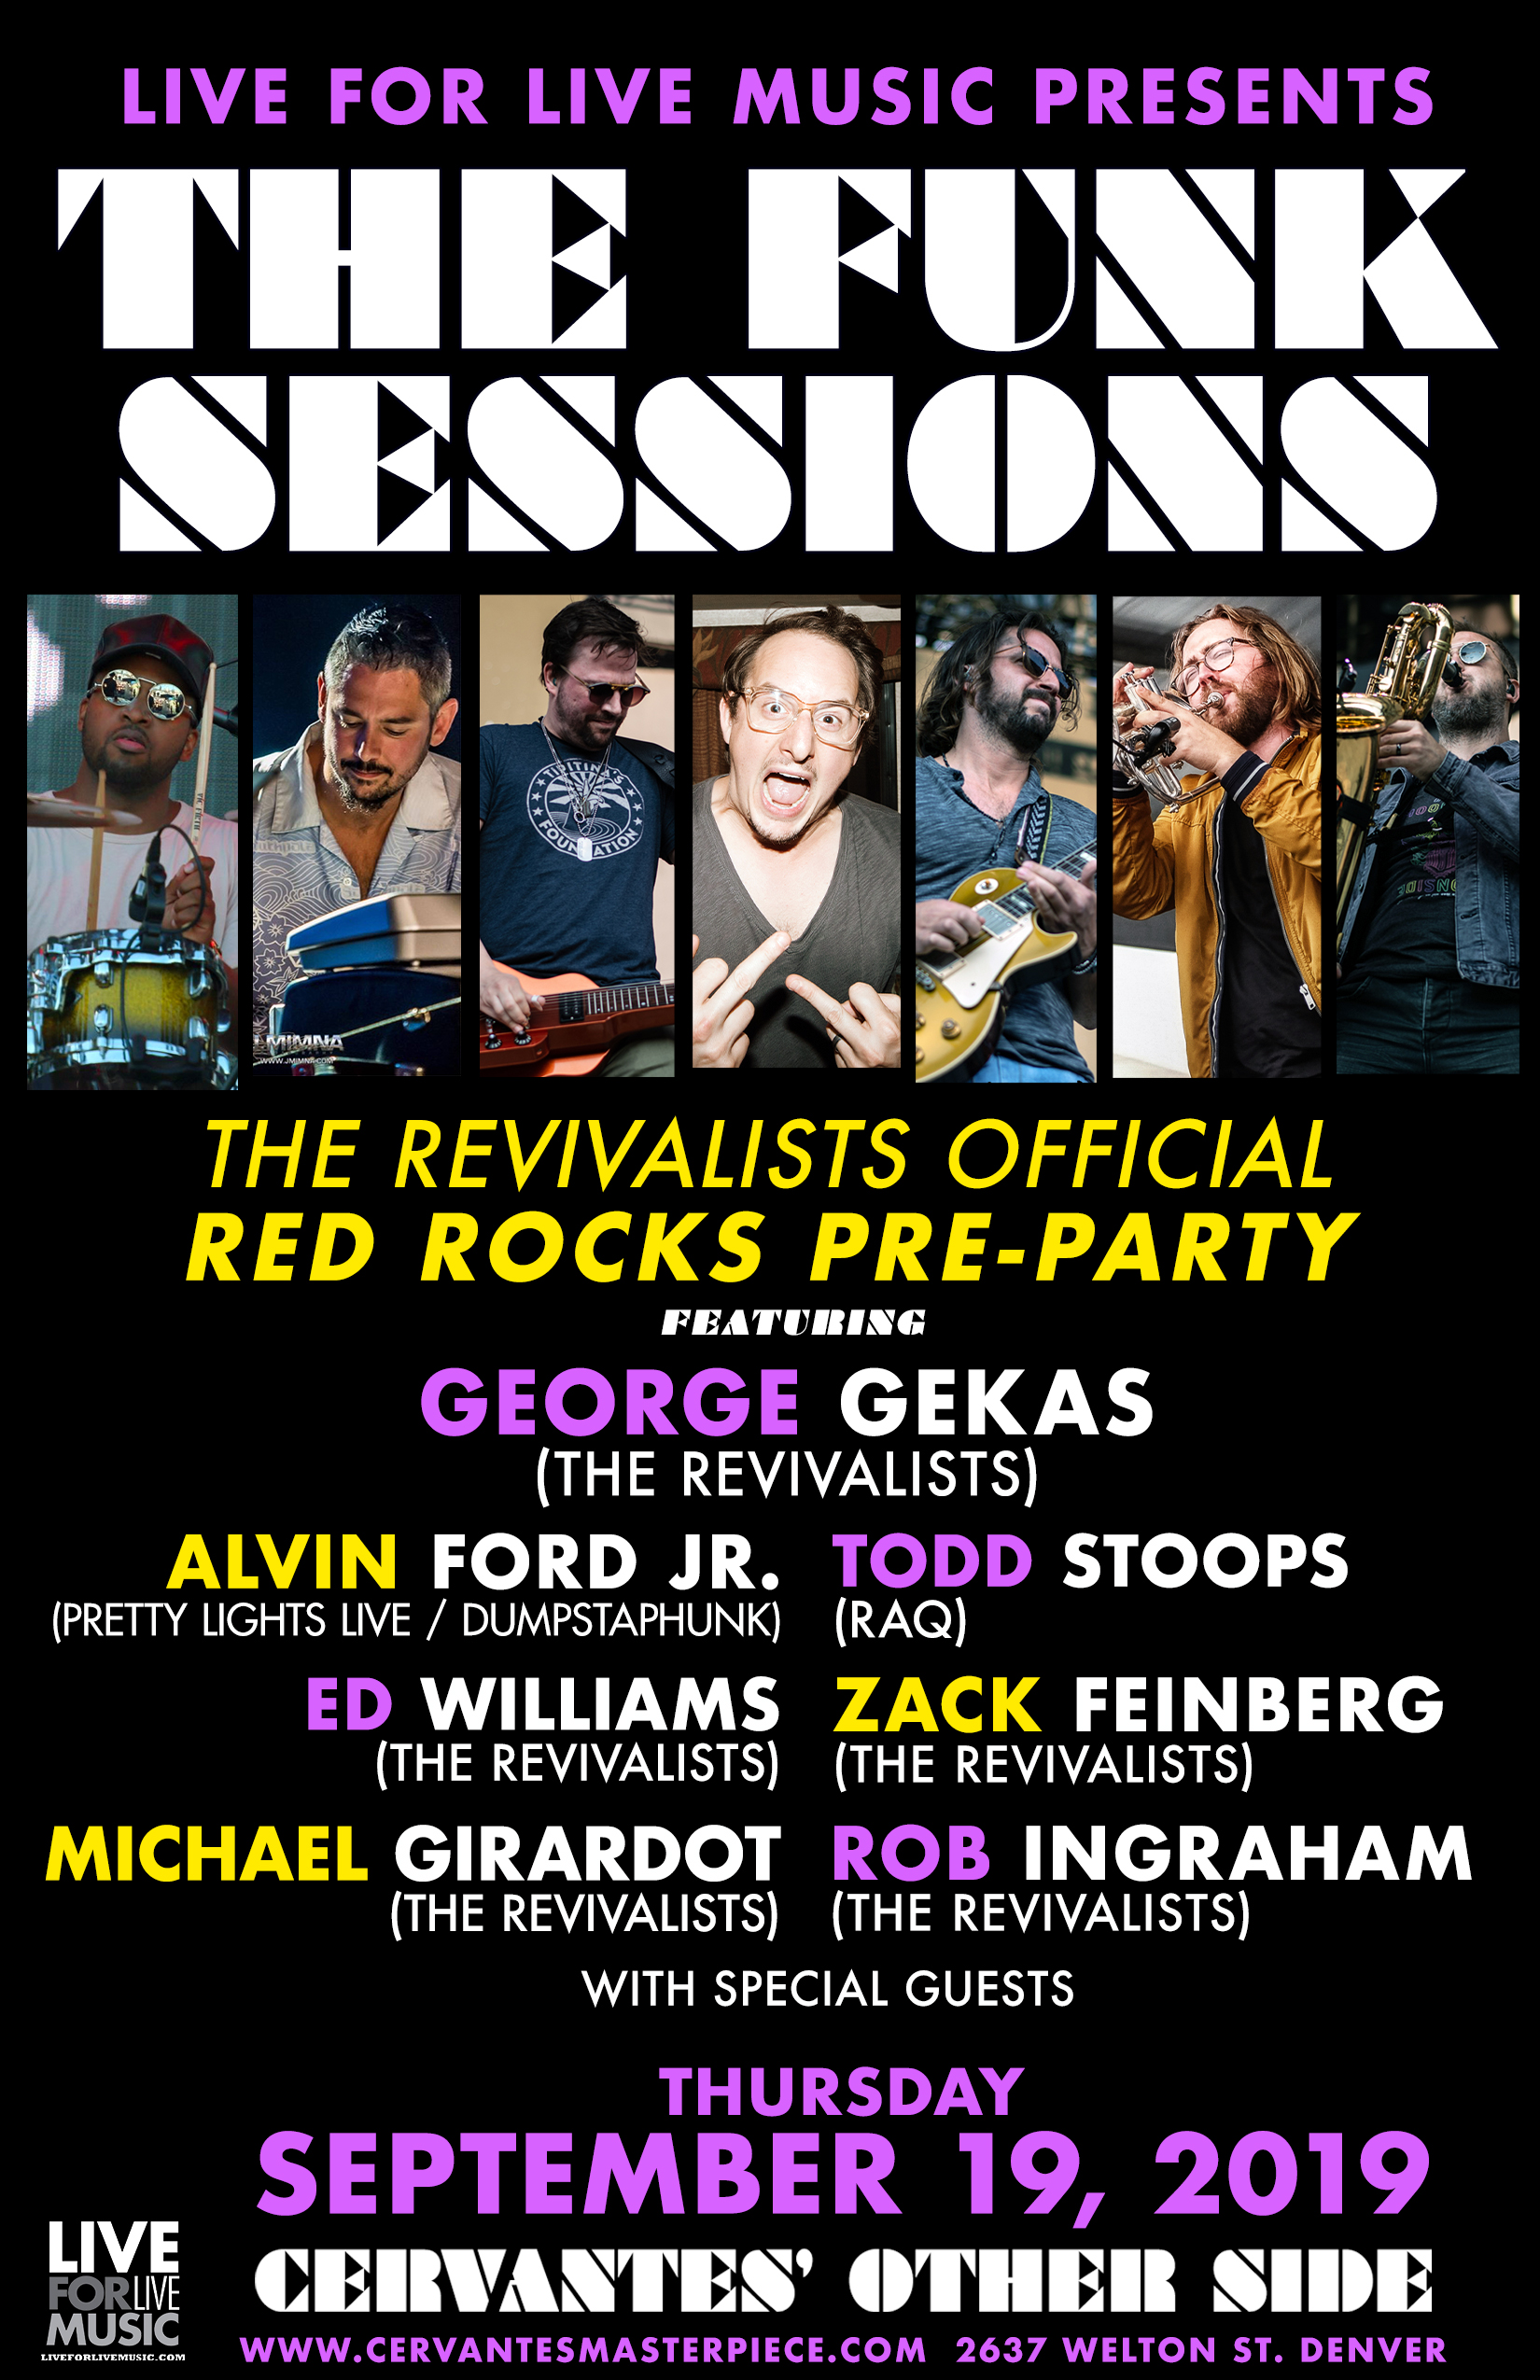 The Funk Sessions, Revivalists Pre-Party